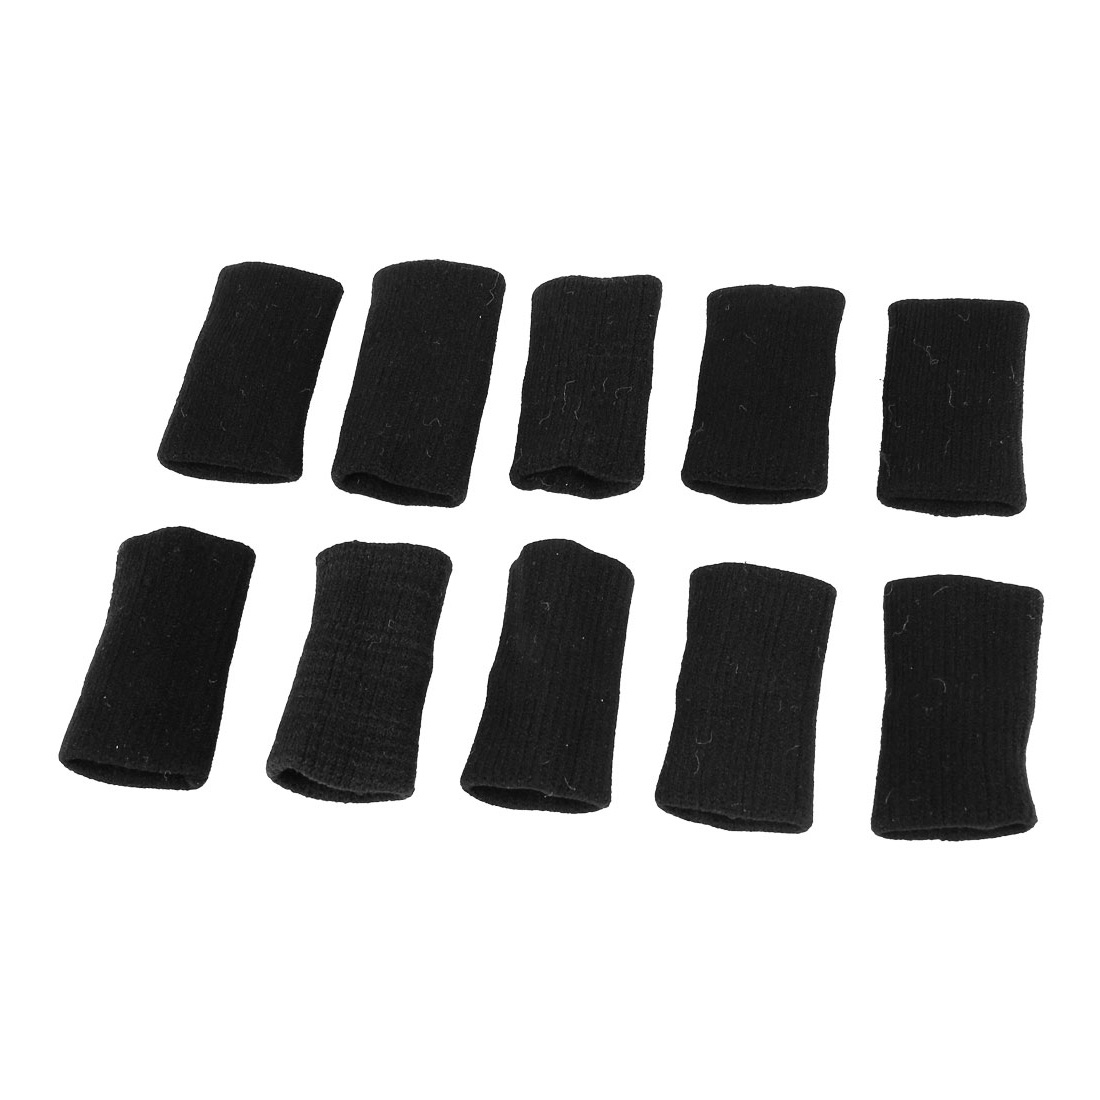 Unique Bargains 10Pcs Stretchy Volleyball Basketball Finger Sleeves Protector Wrap Guard for Unisex